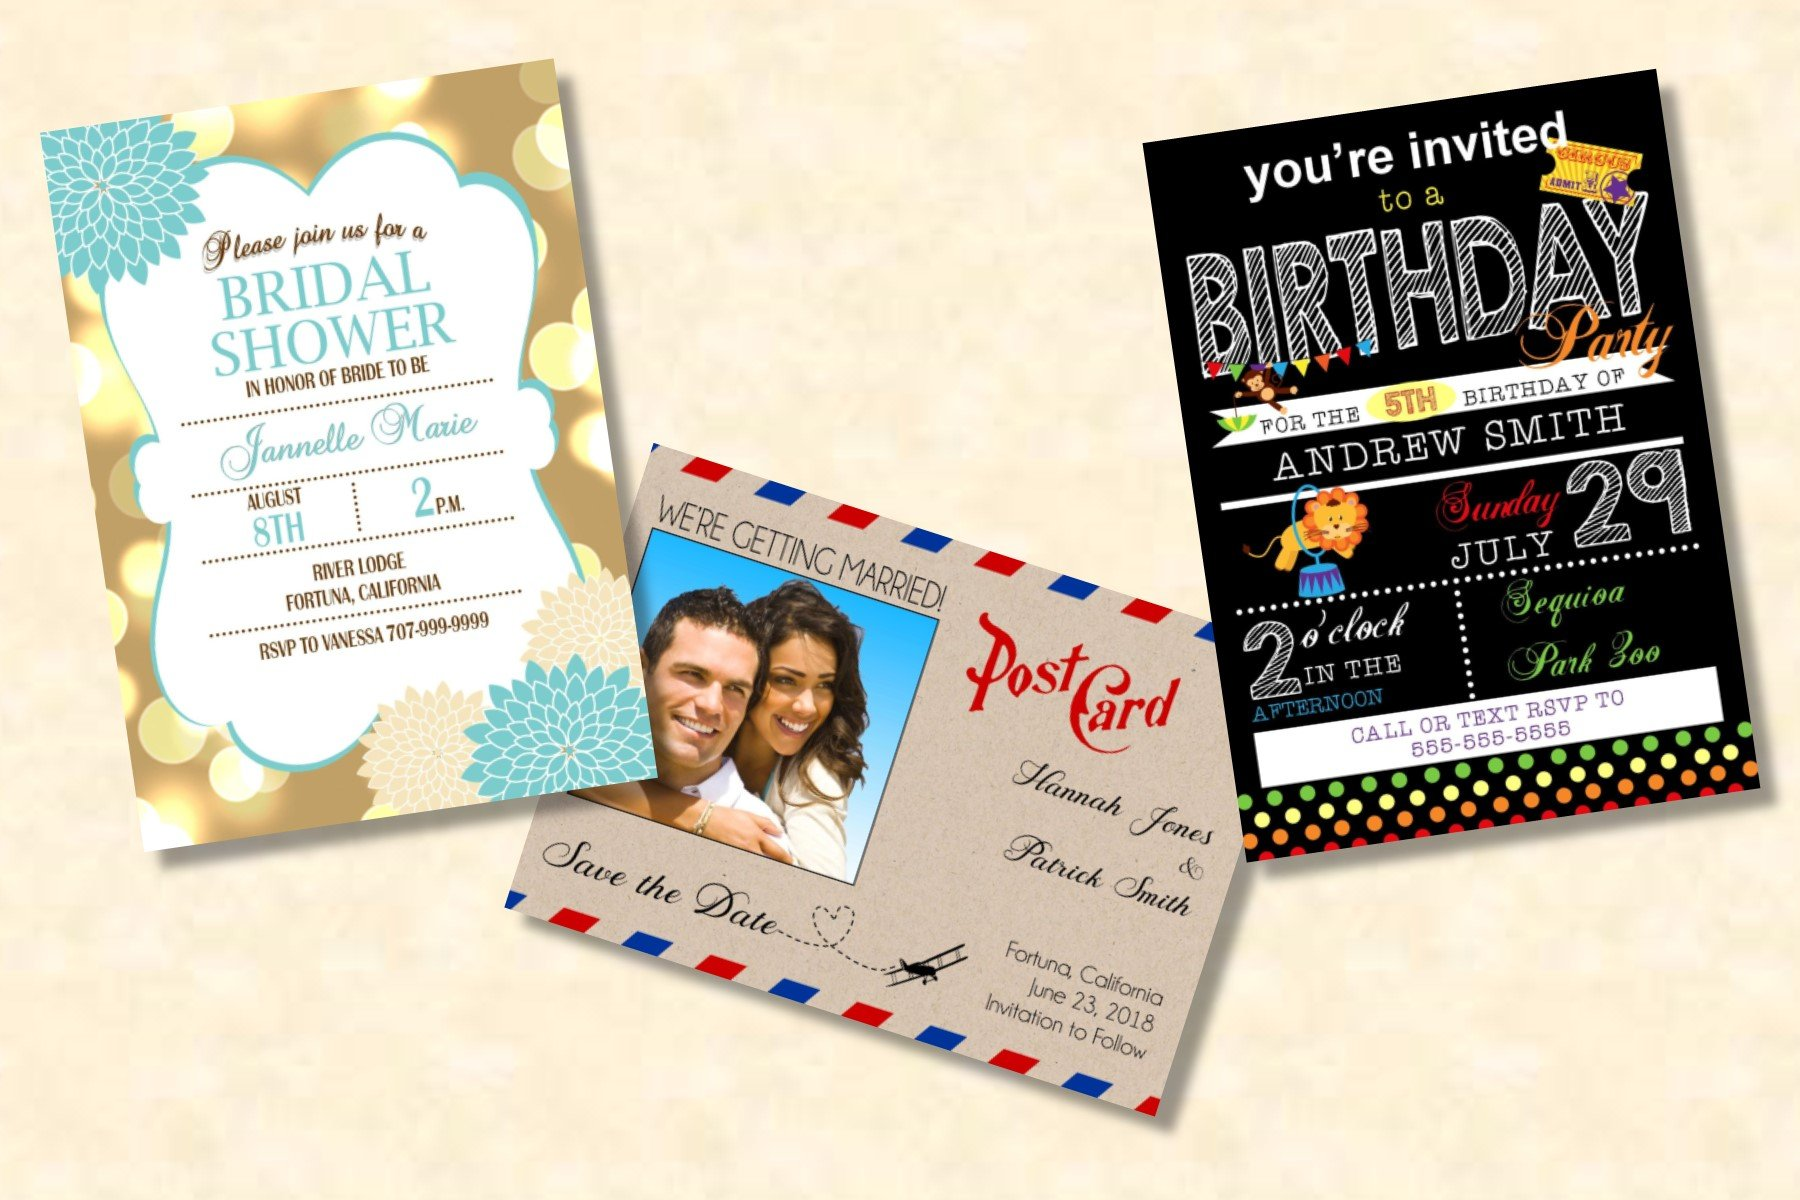 Postcard & Invitation Black Printing Options No Bleed Pricing 4.25x5.5